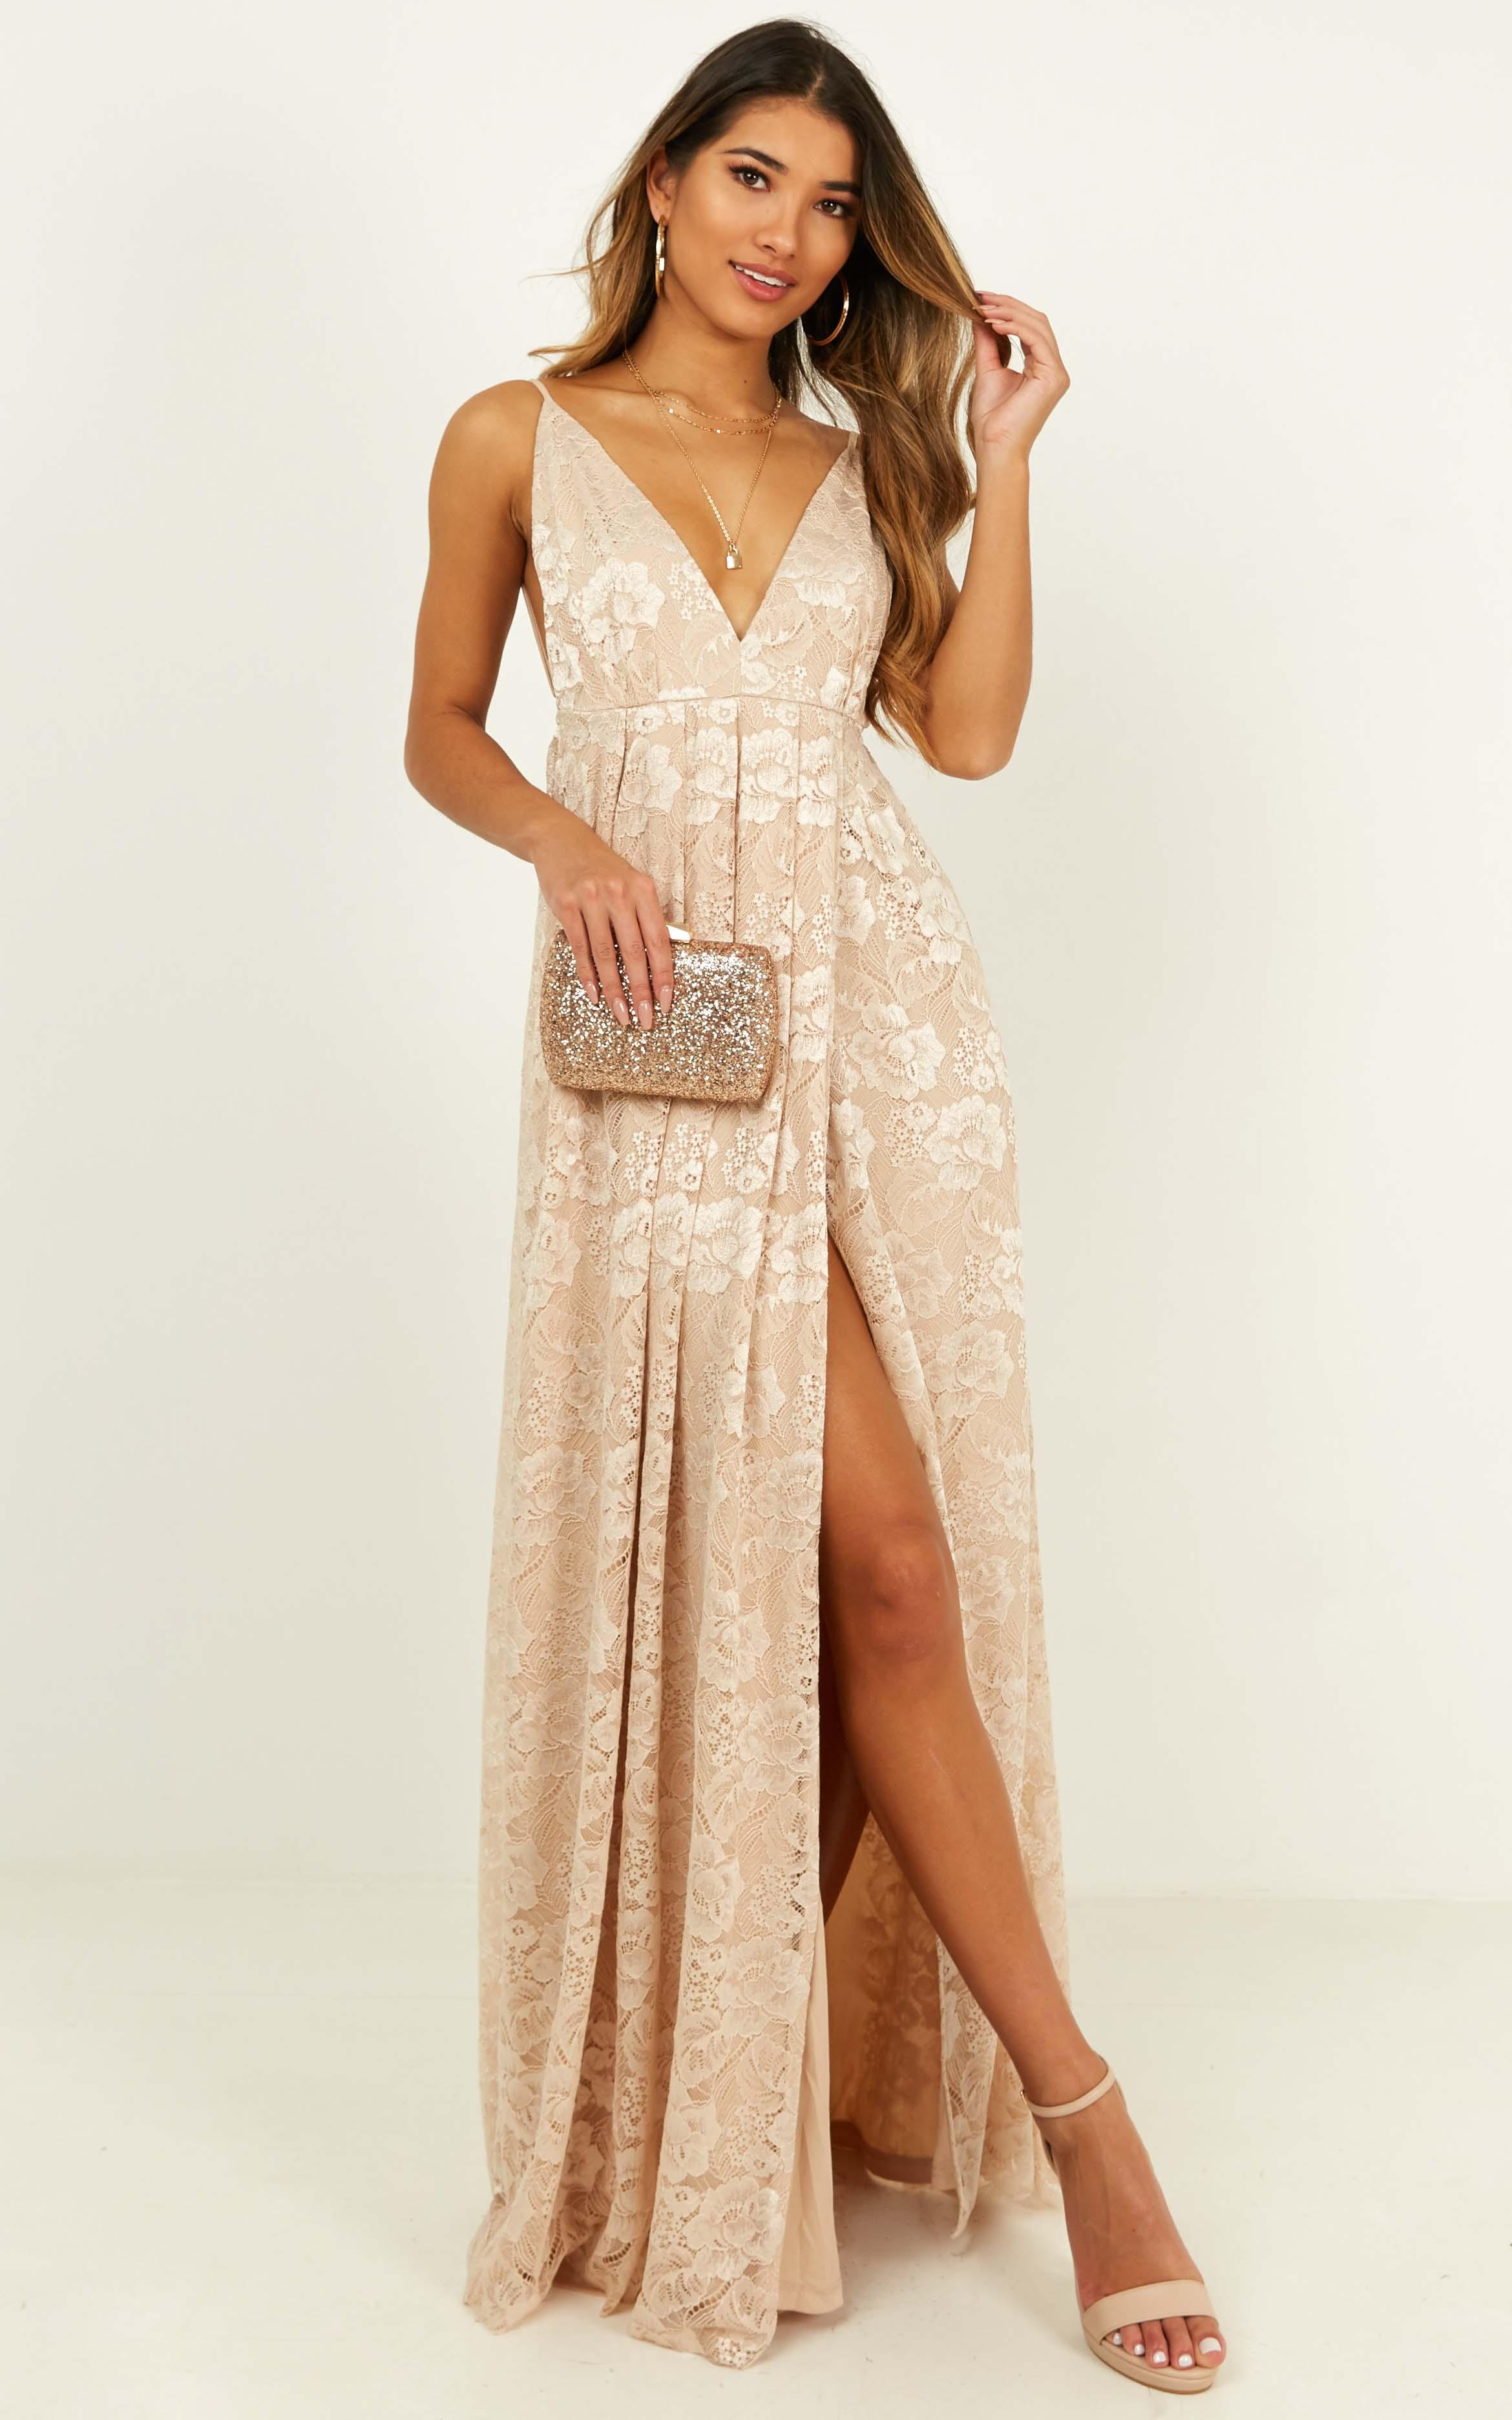 Everything You Say Dress in champagne lace - 12 (L), Beige, hi-res image number null